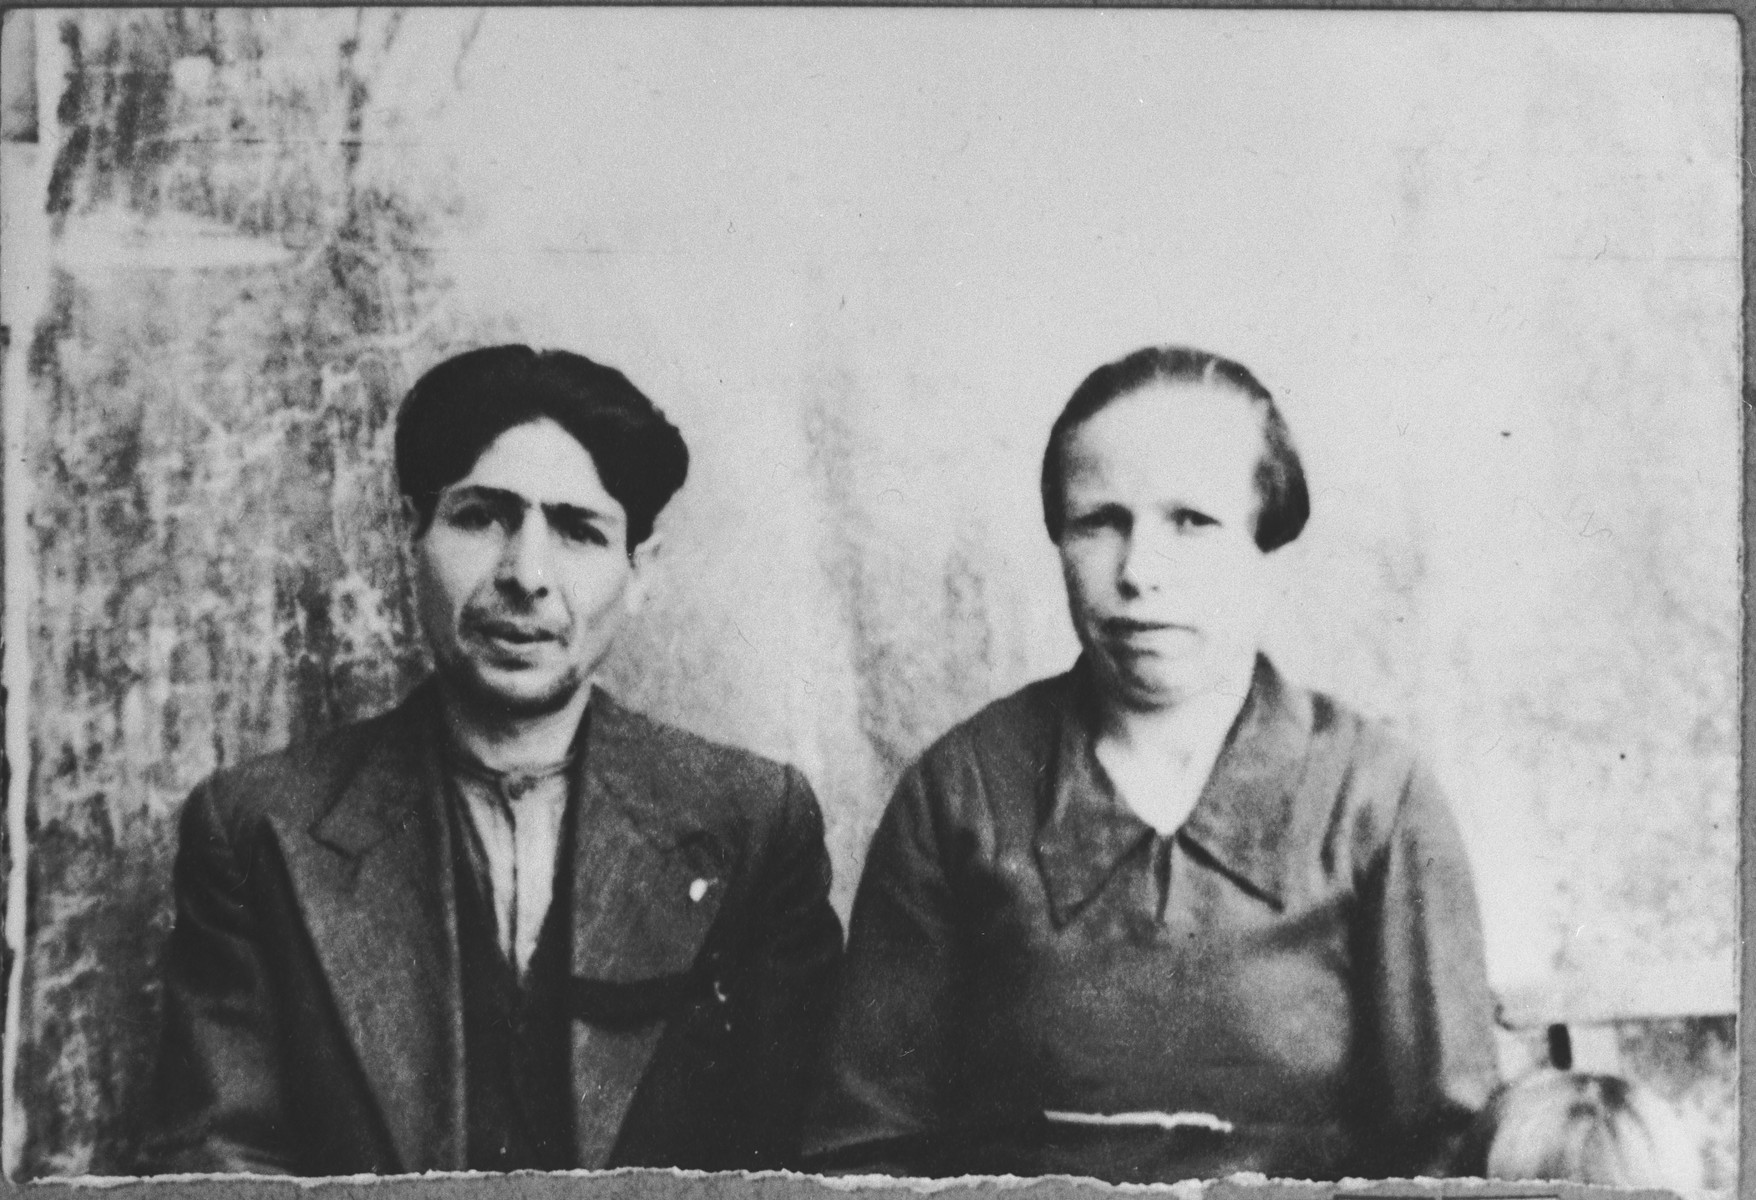 Portrait of Avram Kamchi, son of Mentesh Kamchi, and Avram's wife, Sara.  He was a greengrocer.  They lived at Skopyanska 52 in Bitola.